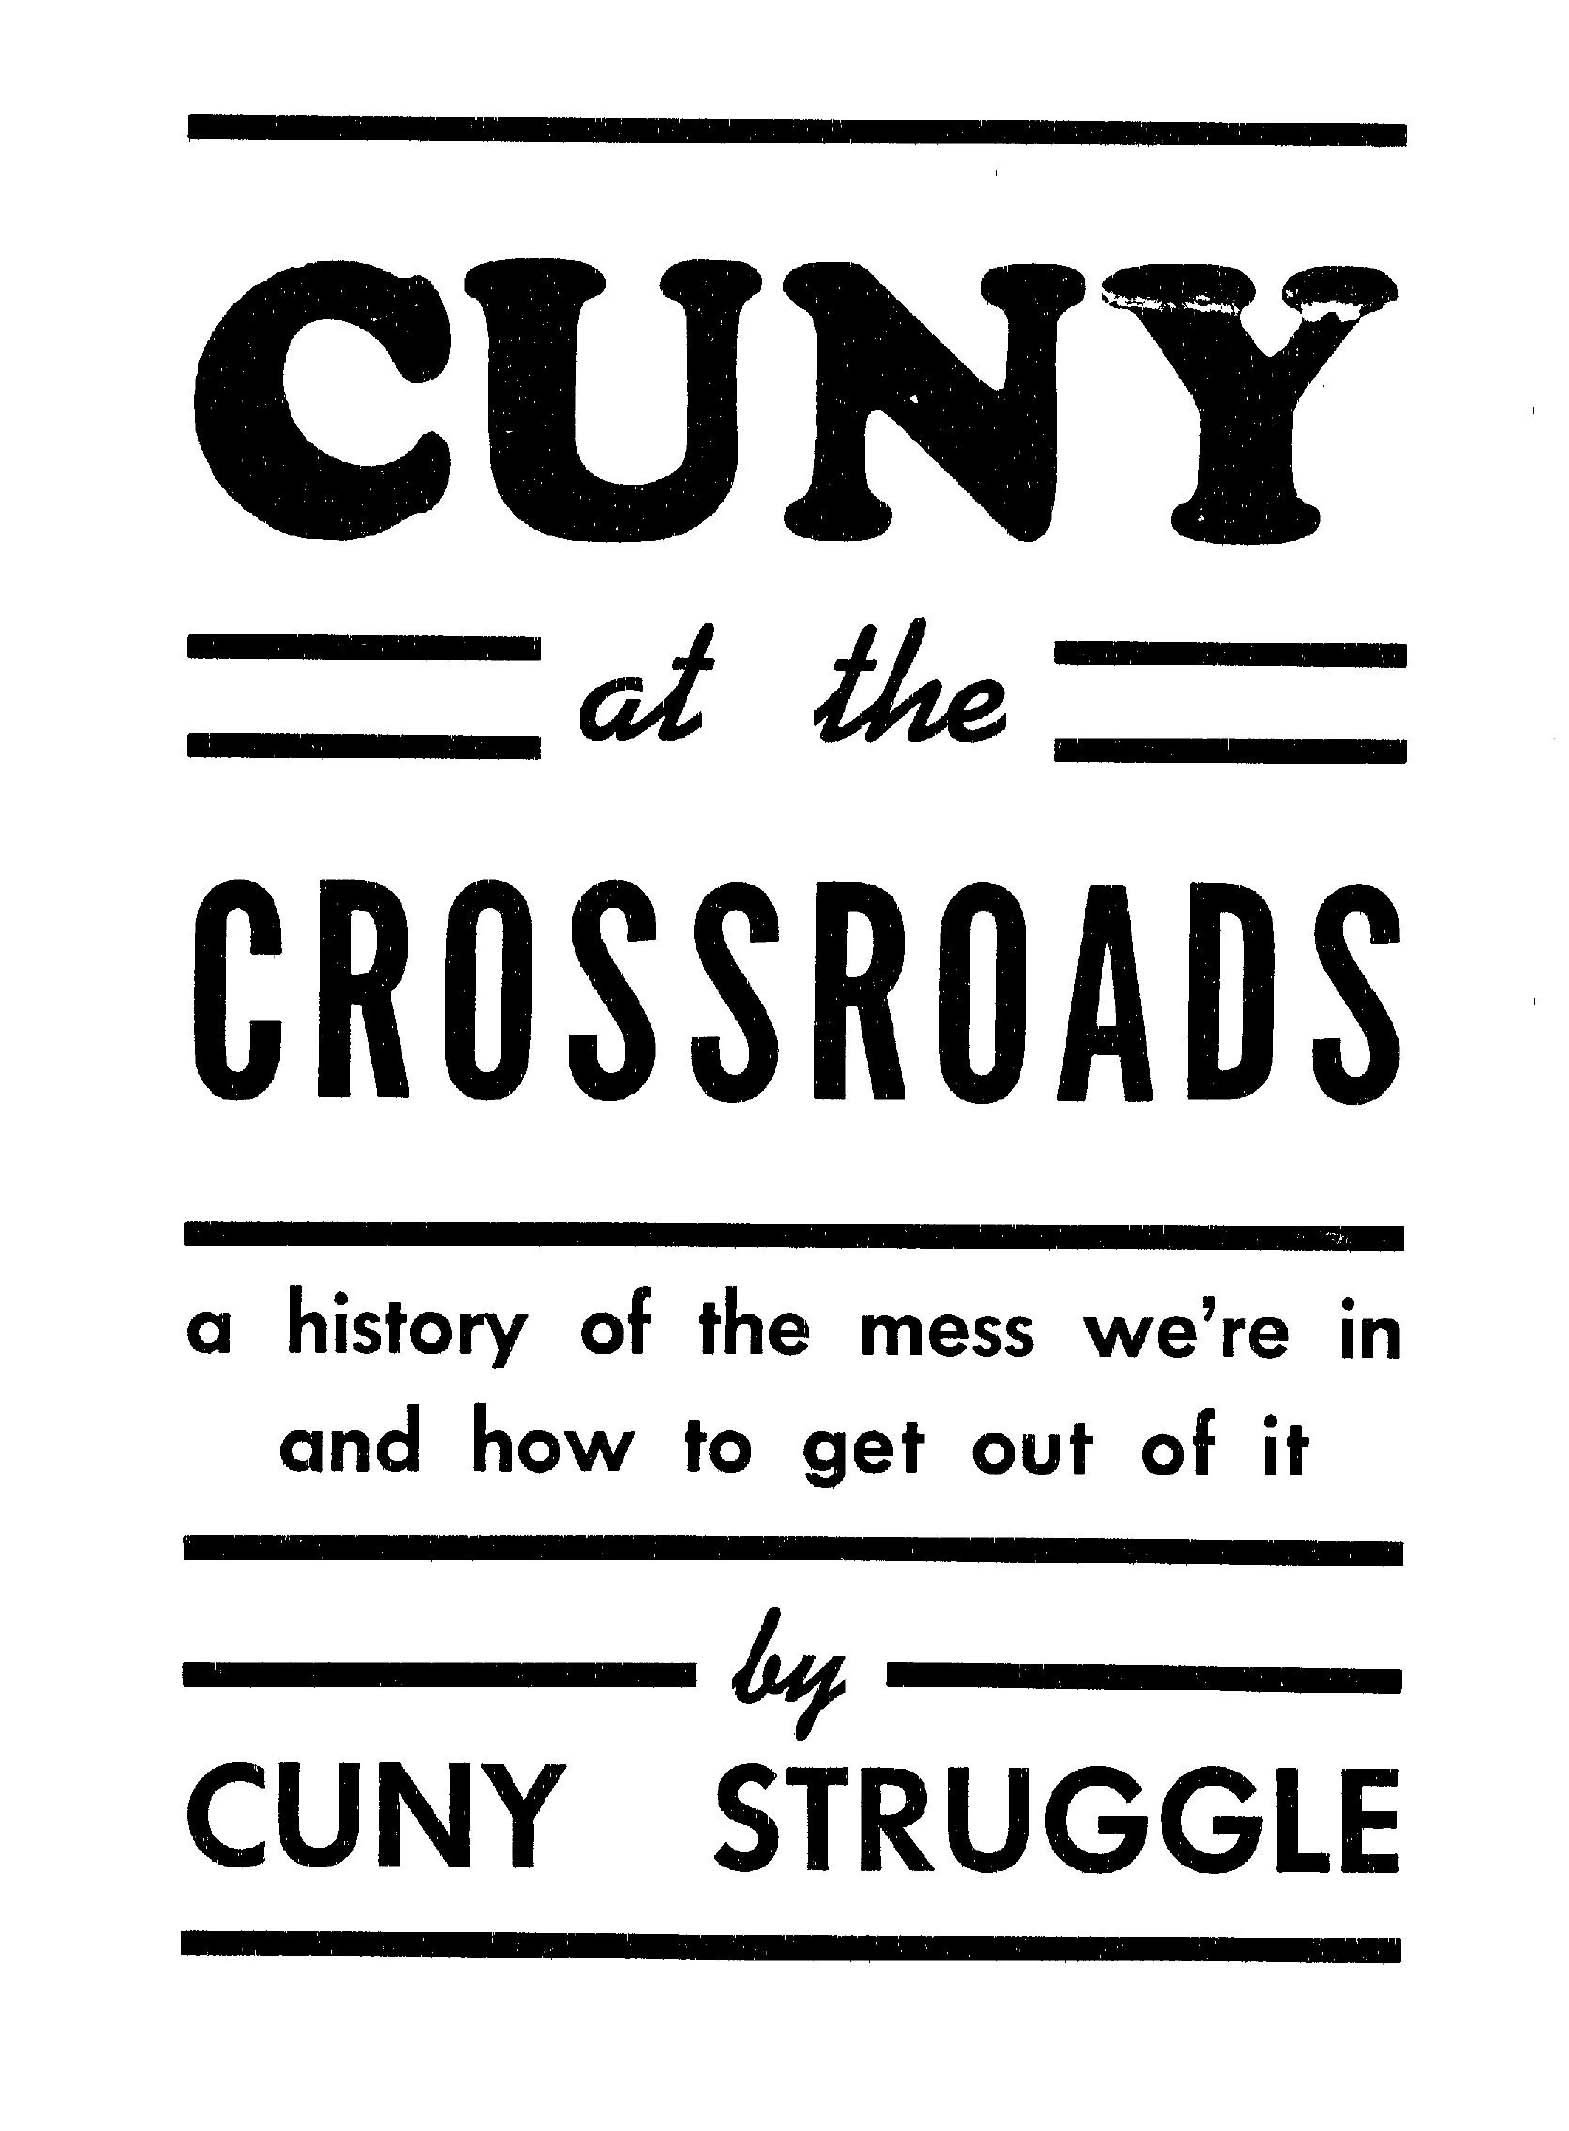 CUNY at the Crossroads